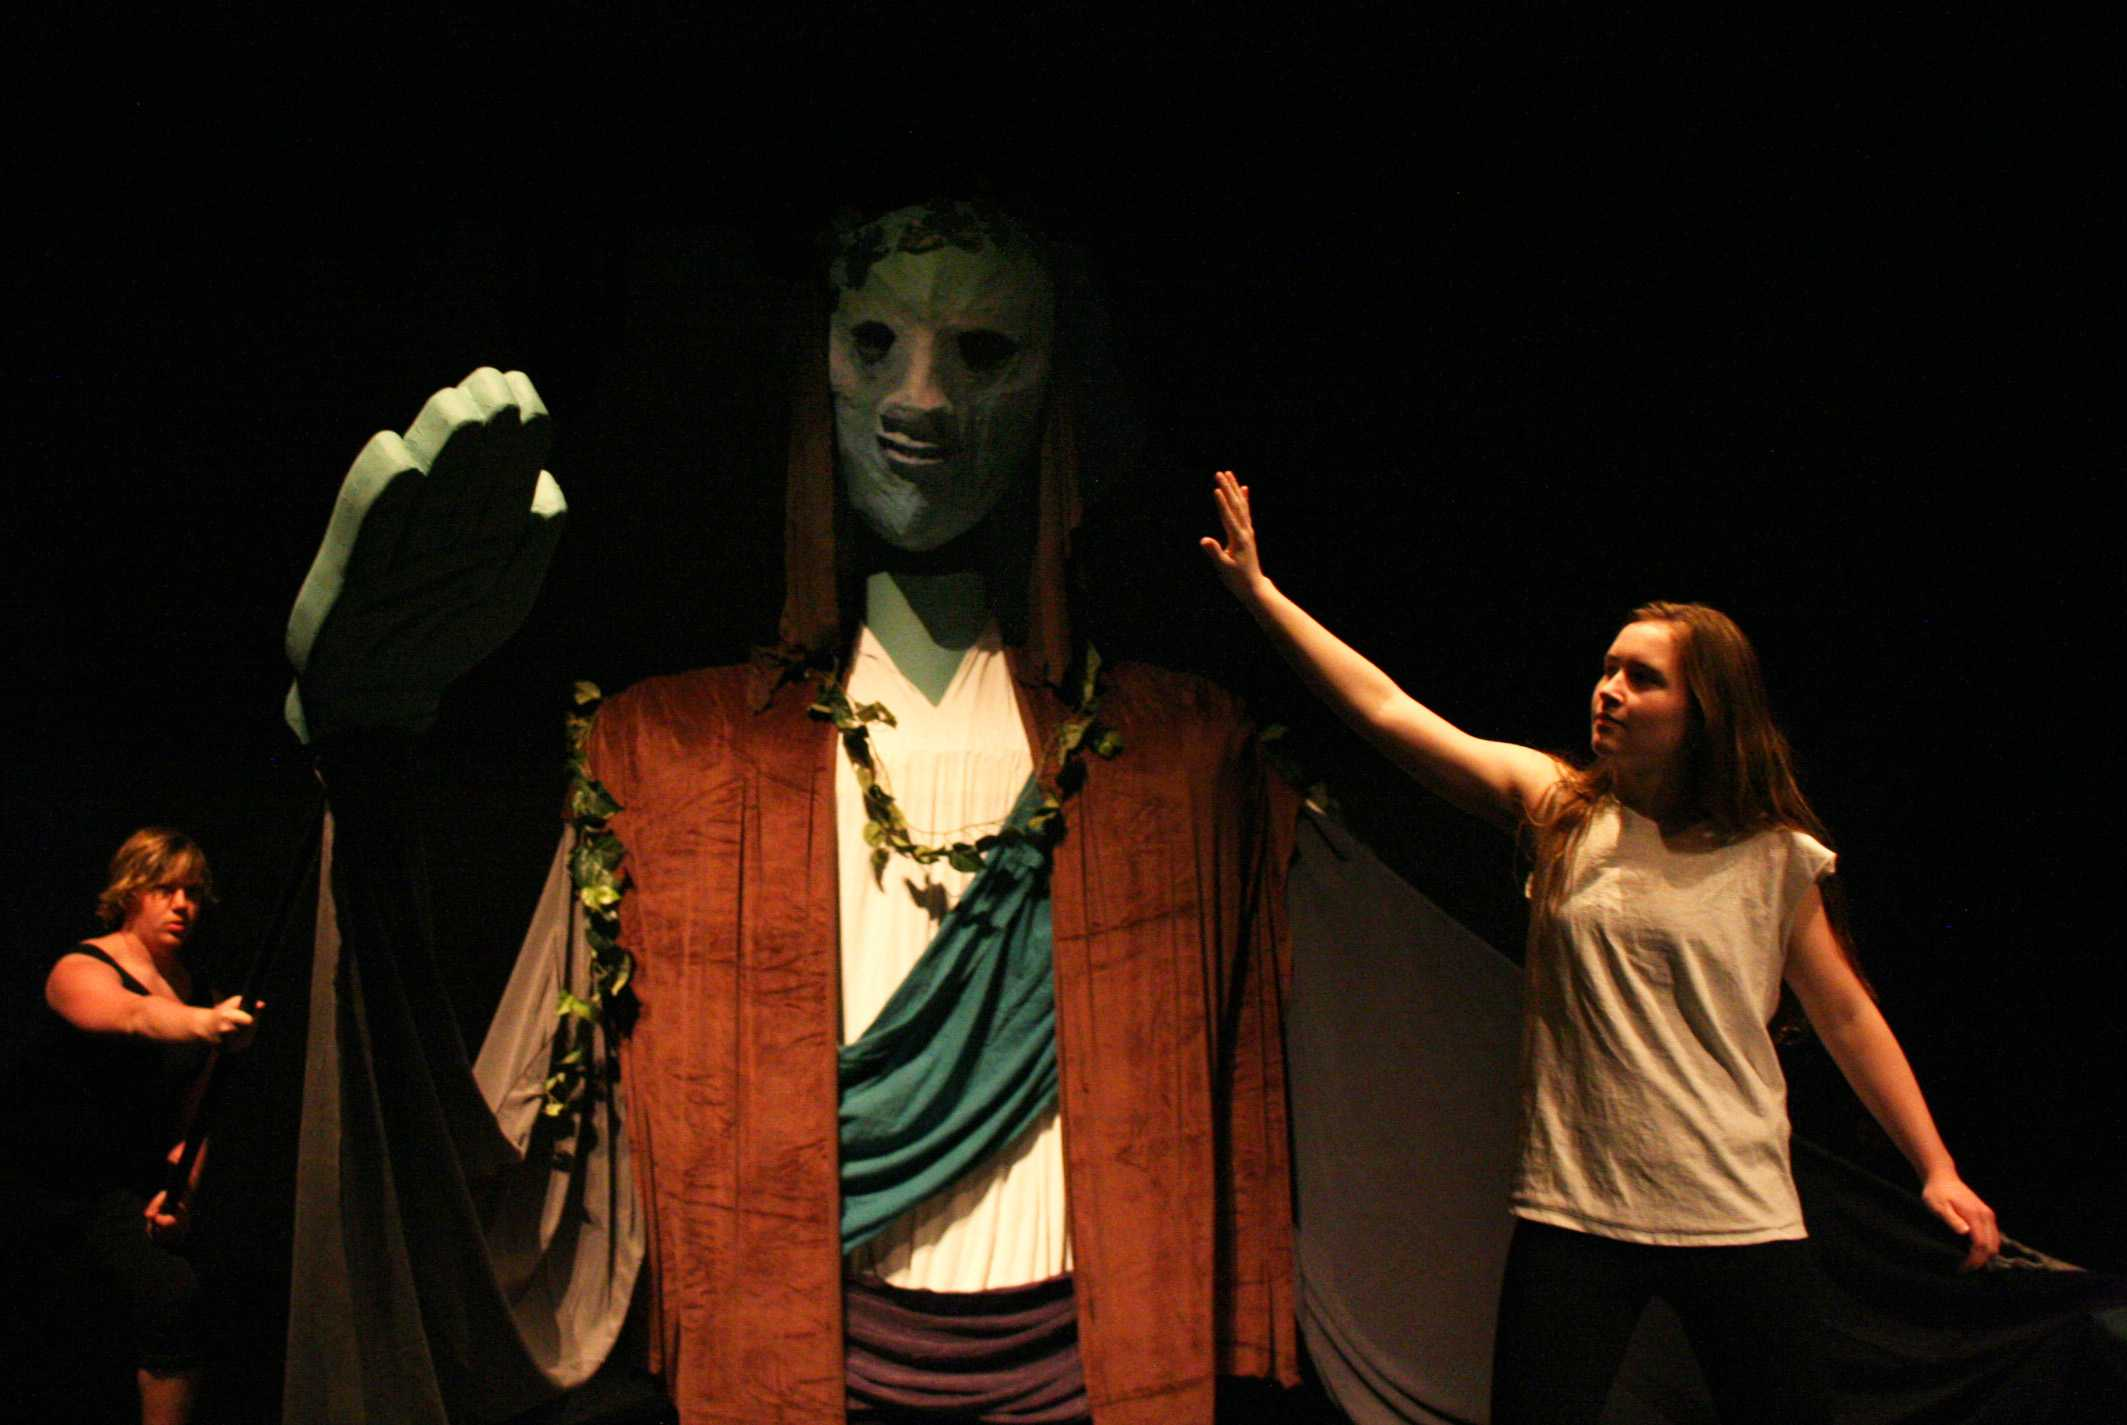 Freshman Ruby Gibson pushes back the Prospero puppet's hand, held up by senior Noah Silberman.